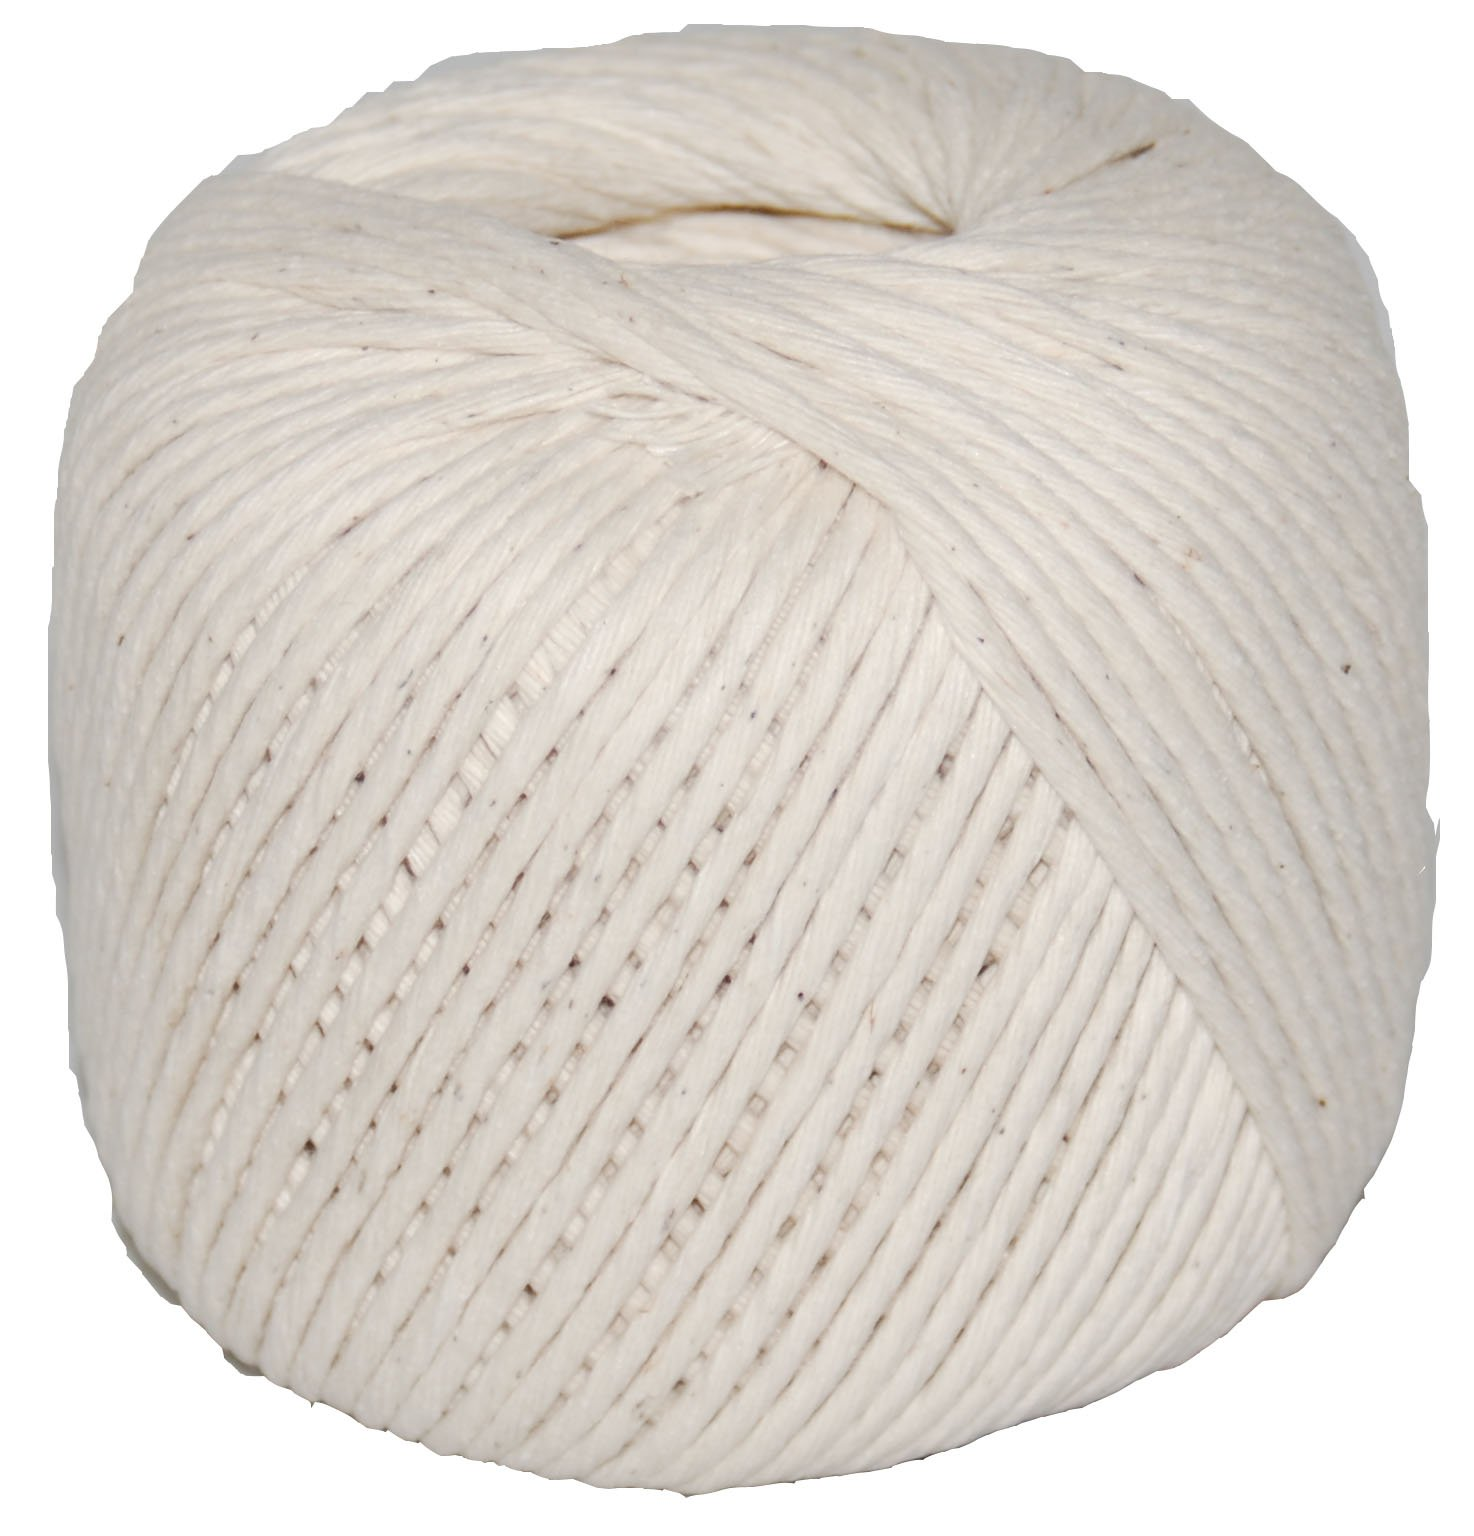 T.W . Evans Cordage 09-368 Number-36 Polished Beef Cotton Twine with 400-Feet Ball